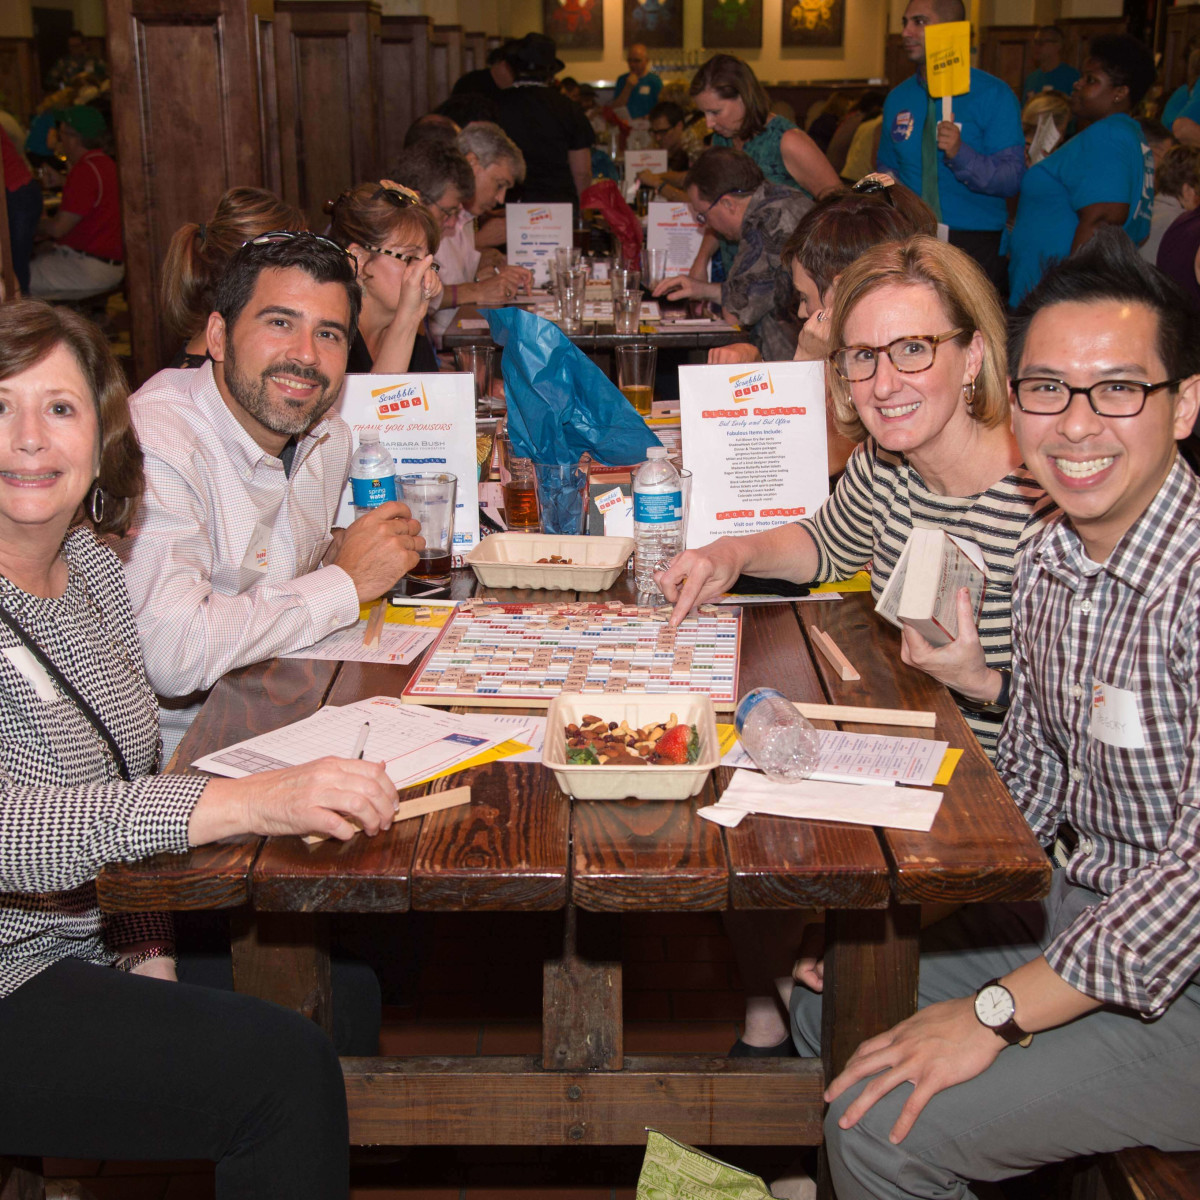 Scrabble in the City, Houston, 9/16, Tracy Janda; Geoff Castro; Eydie Pengelly; Gregory Gee